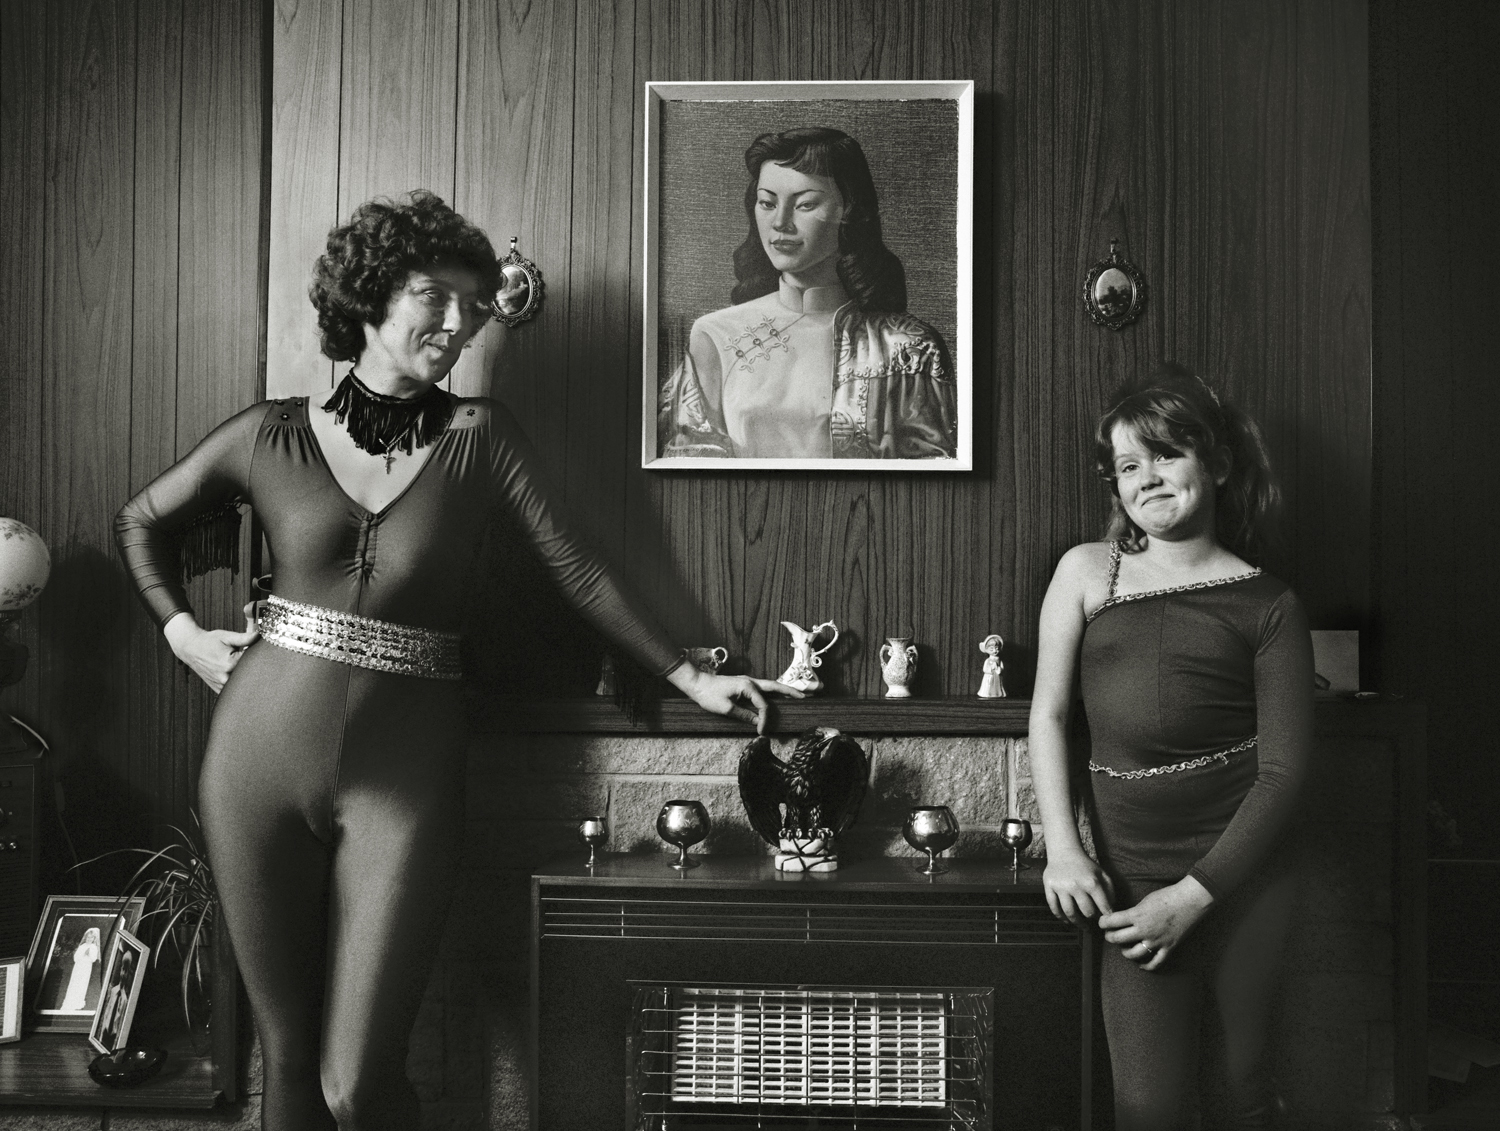 Lorraine & Mum, from Step by Step, 1982